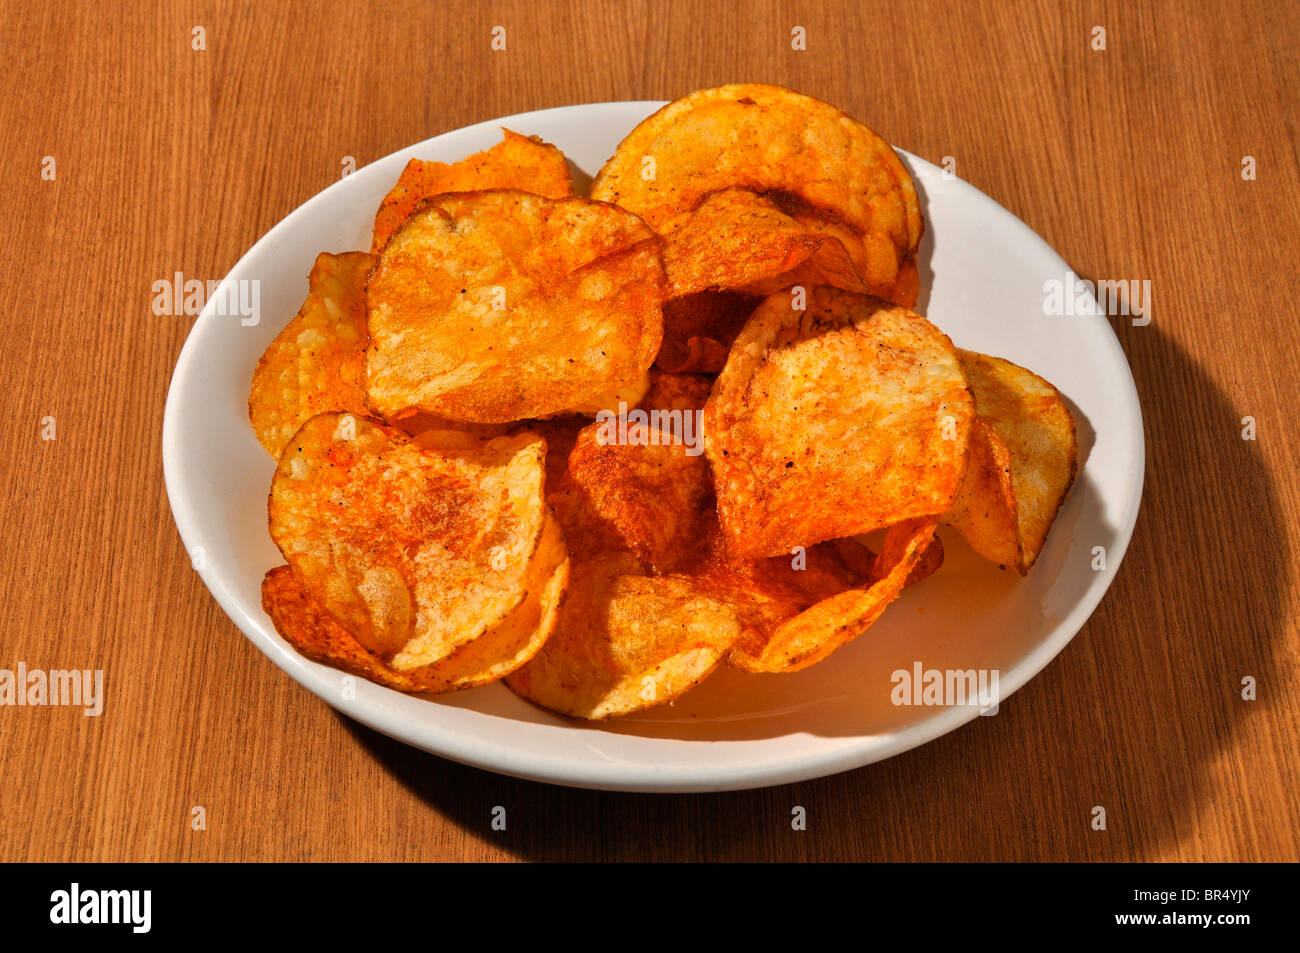 Potato Chips of South India - Stock Image